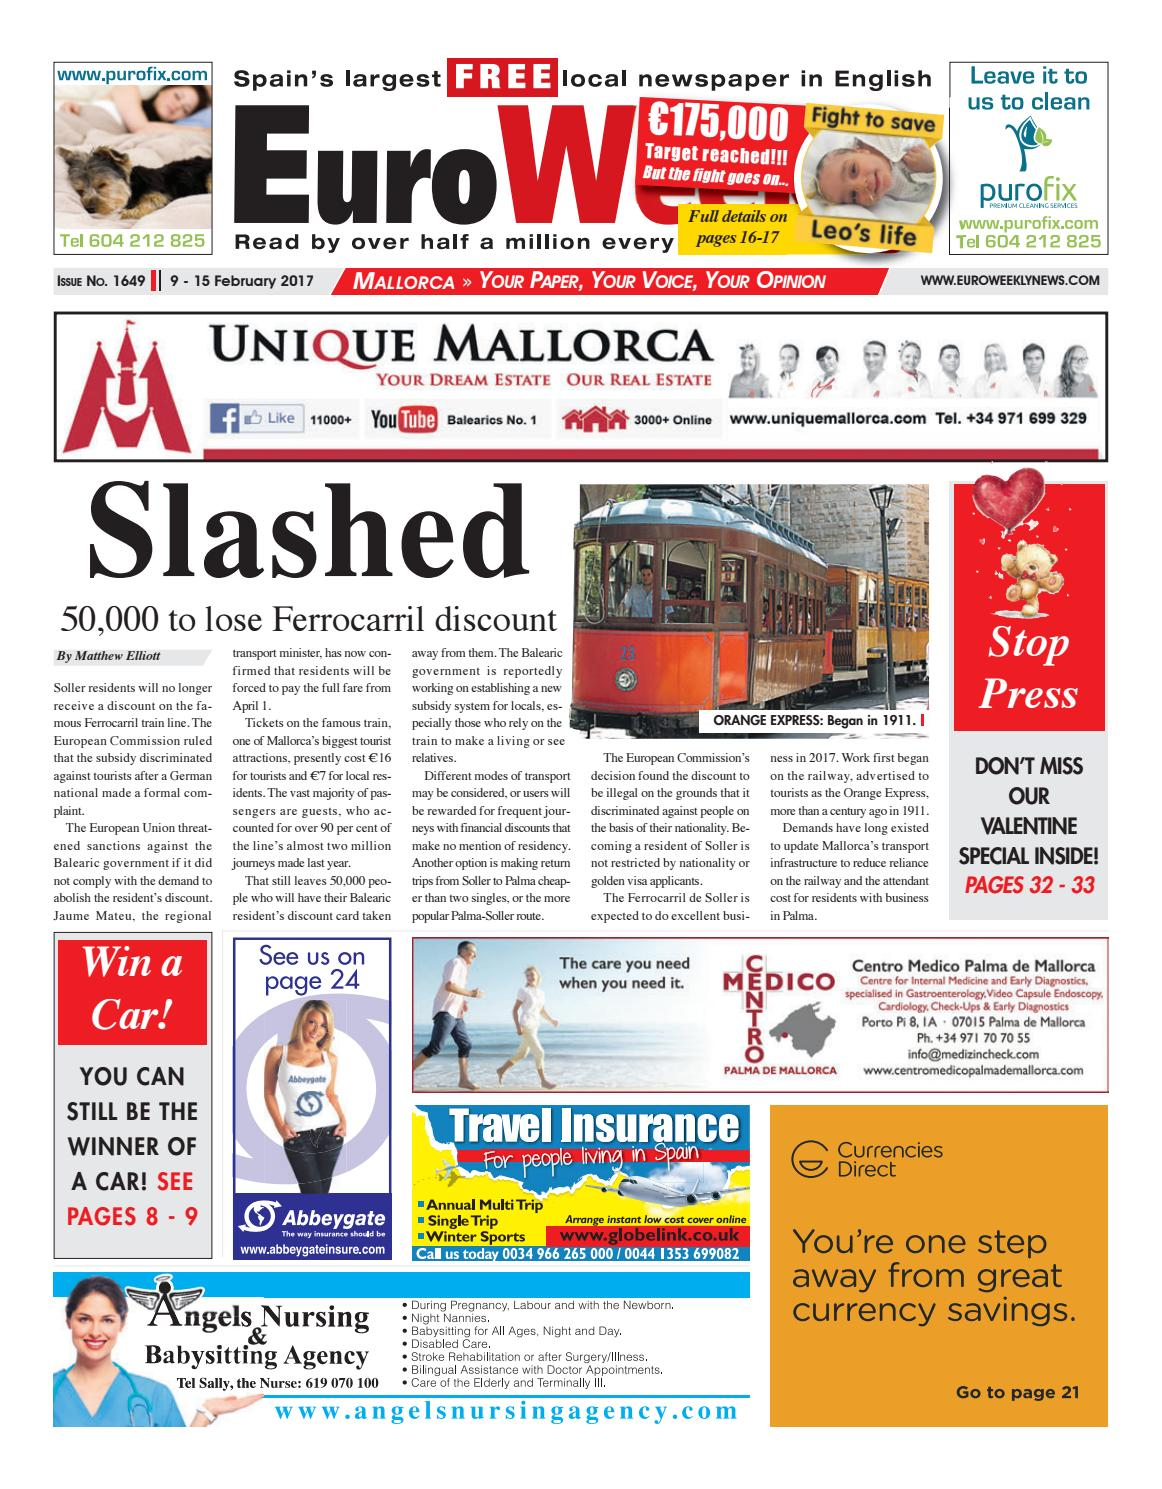 Euro weekly news mallorca 9 15 february 2017 issue 1649 by euro euro weekly news mallorca 9 15 february 2017 issue 1649 by euro weekly news media sa issuu fandeluxe Gallery